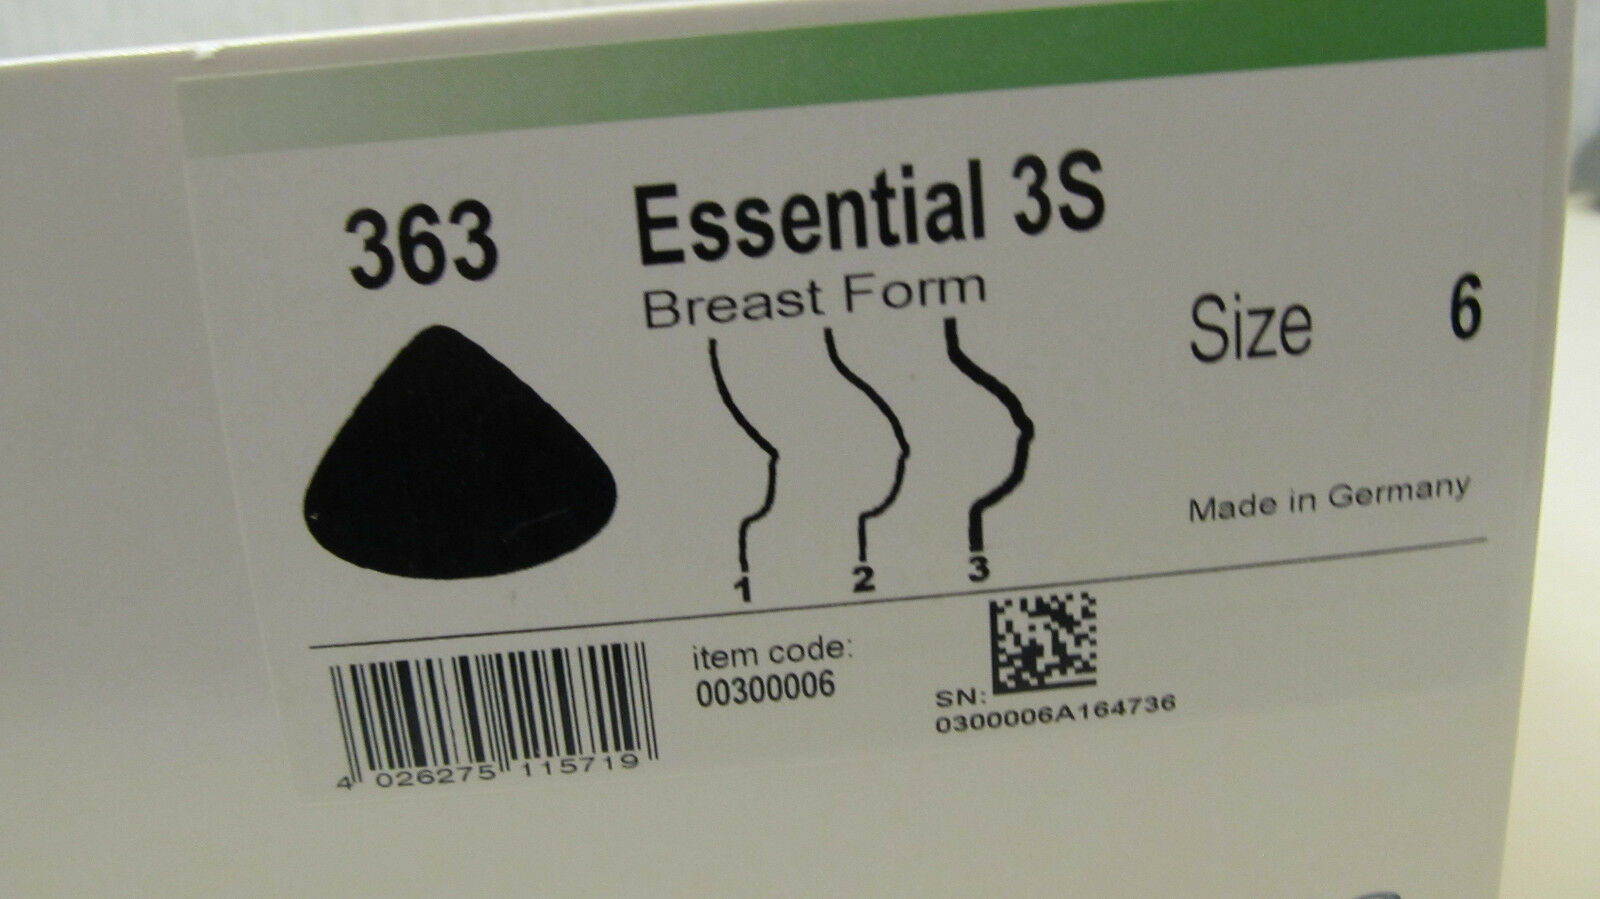 Amoena  Breast Form 363 Essential 3S  Size 6  New in original box comfort nwt